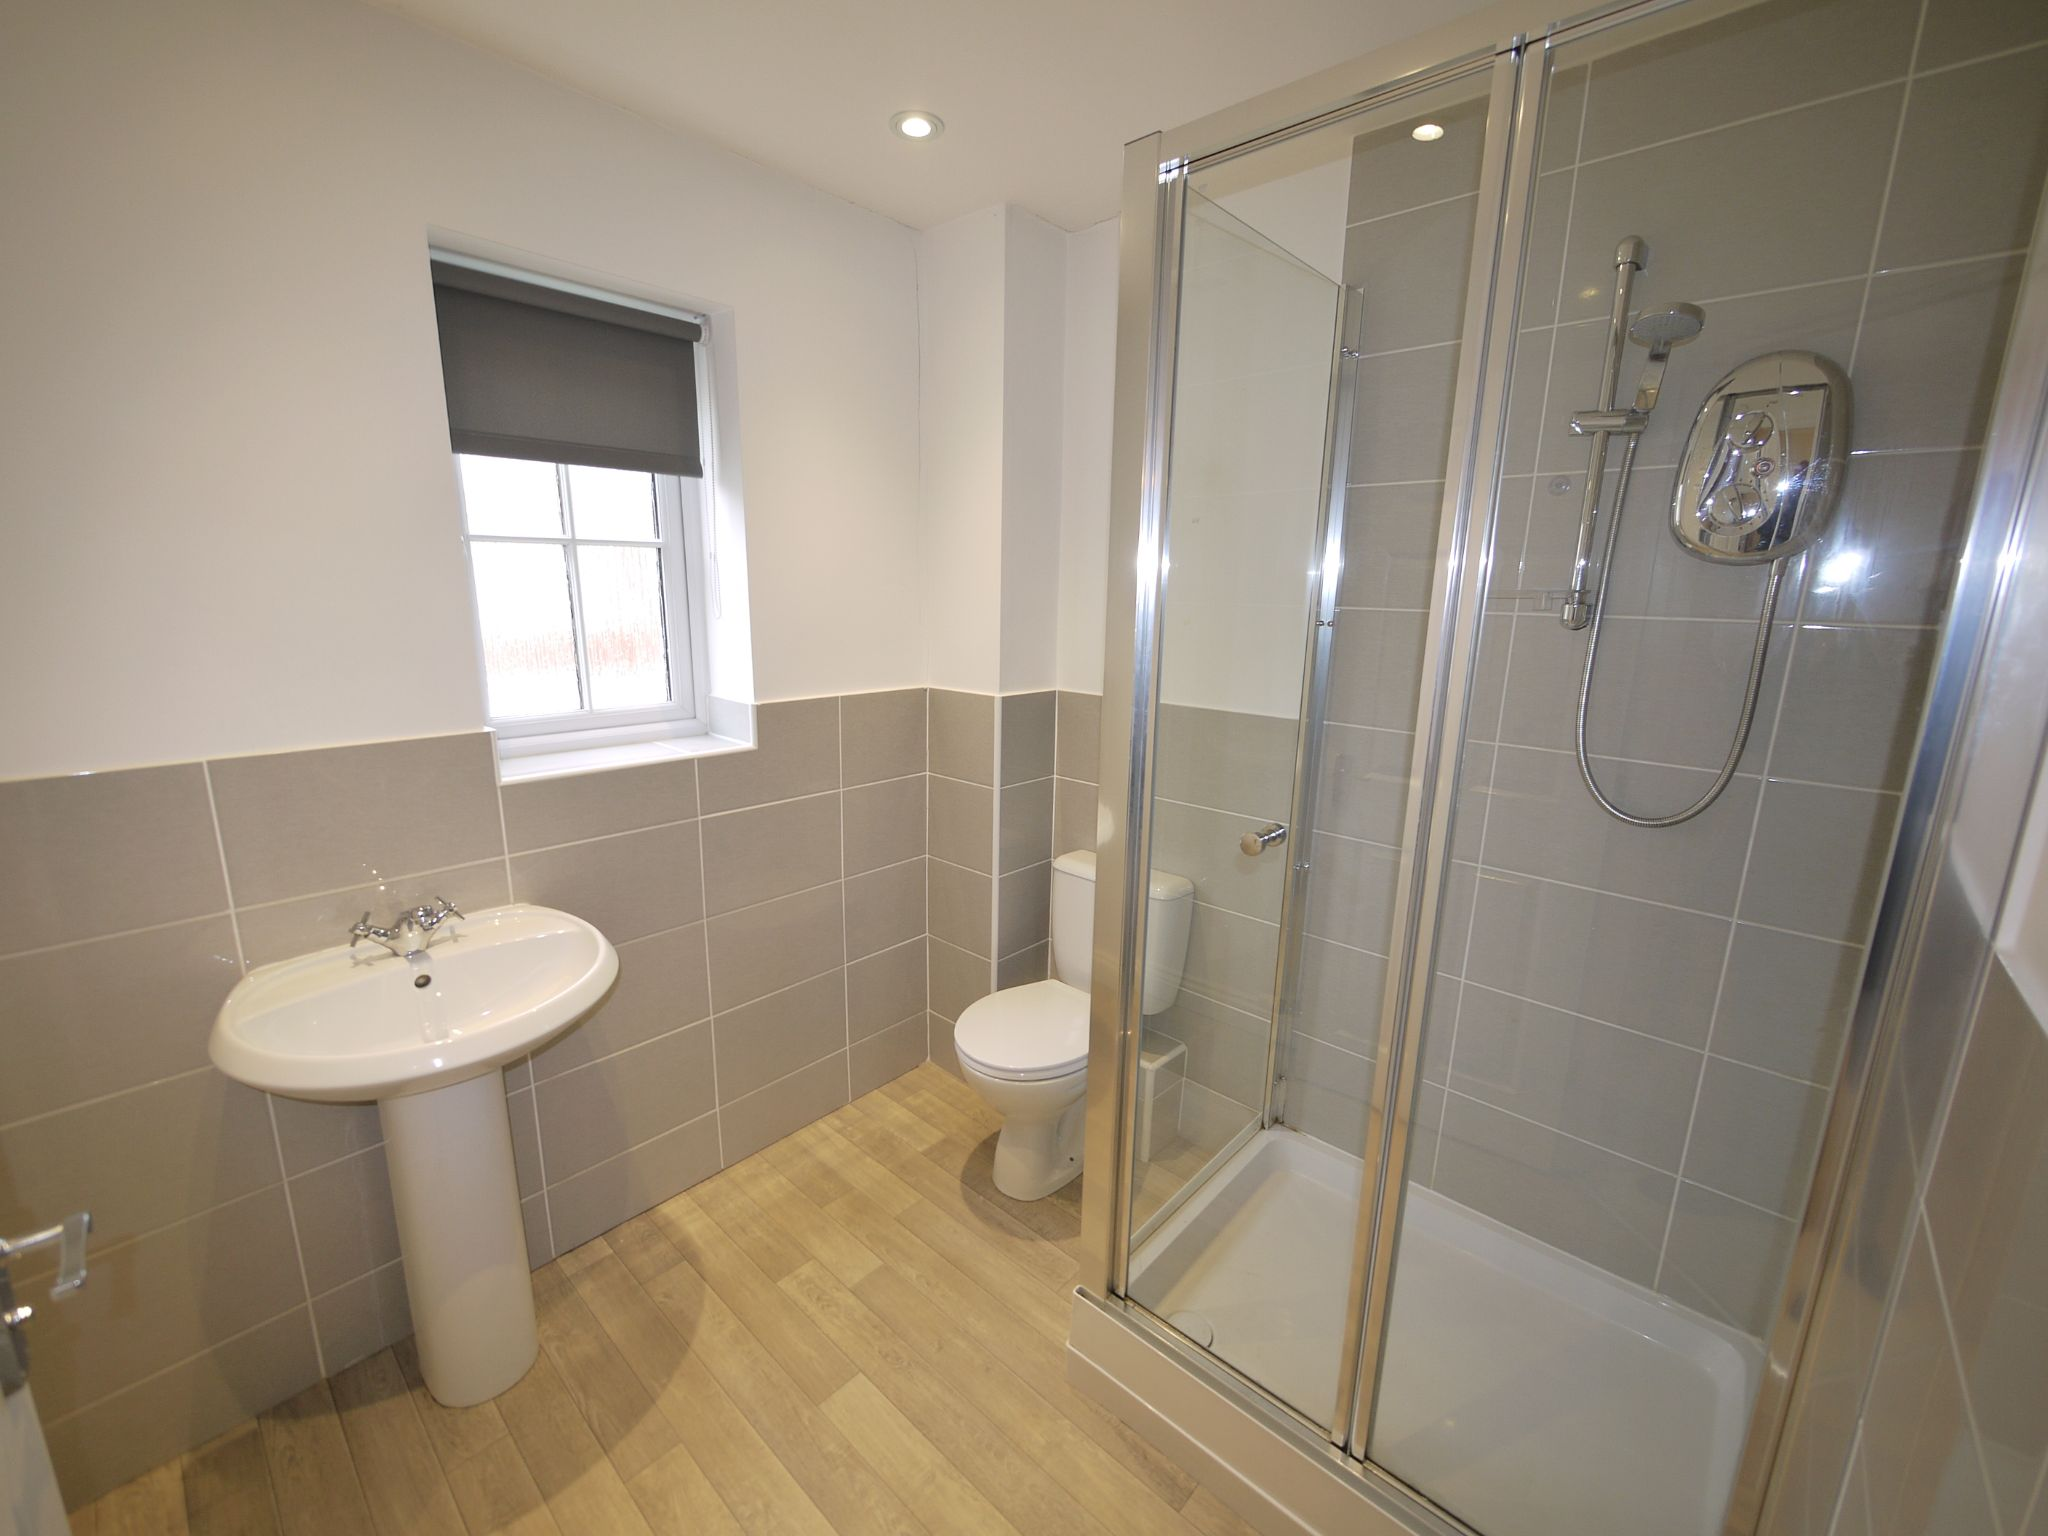 3 bedroom town house SSTC in Mirfield - Photograph 9.